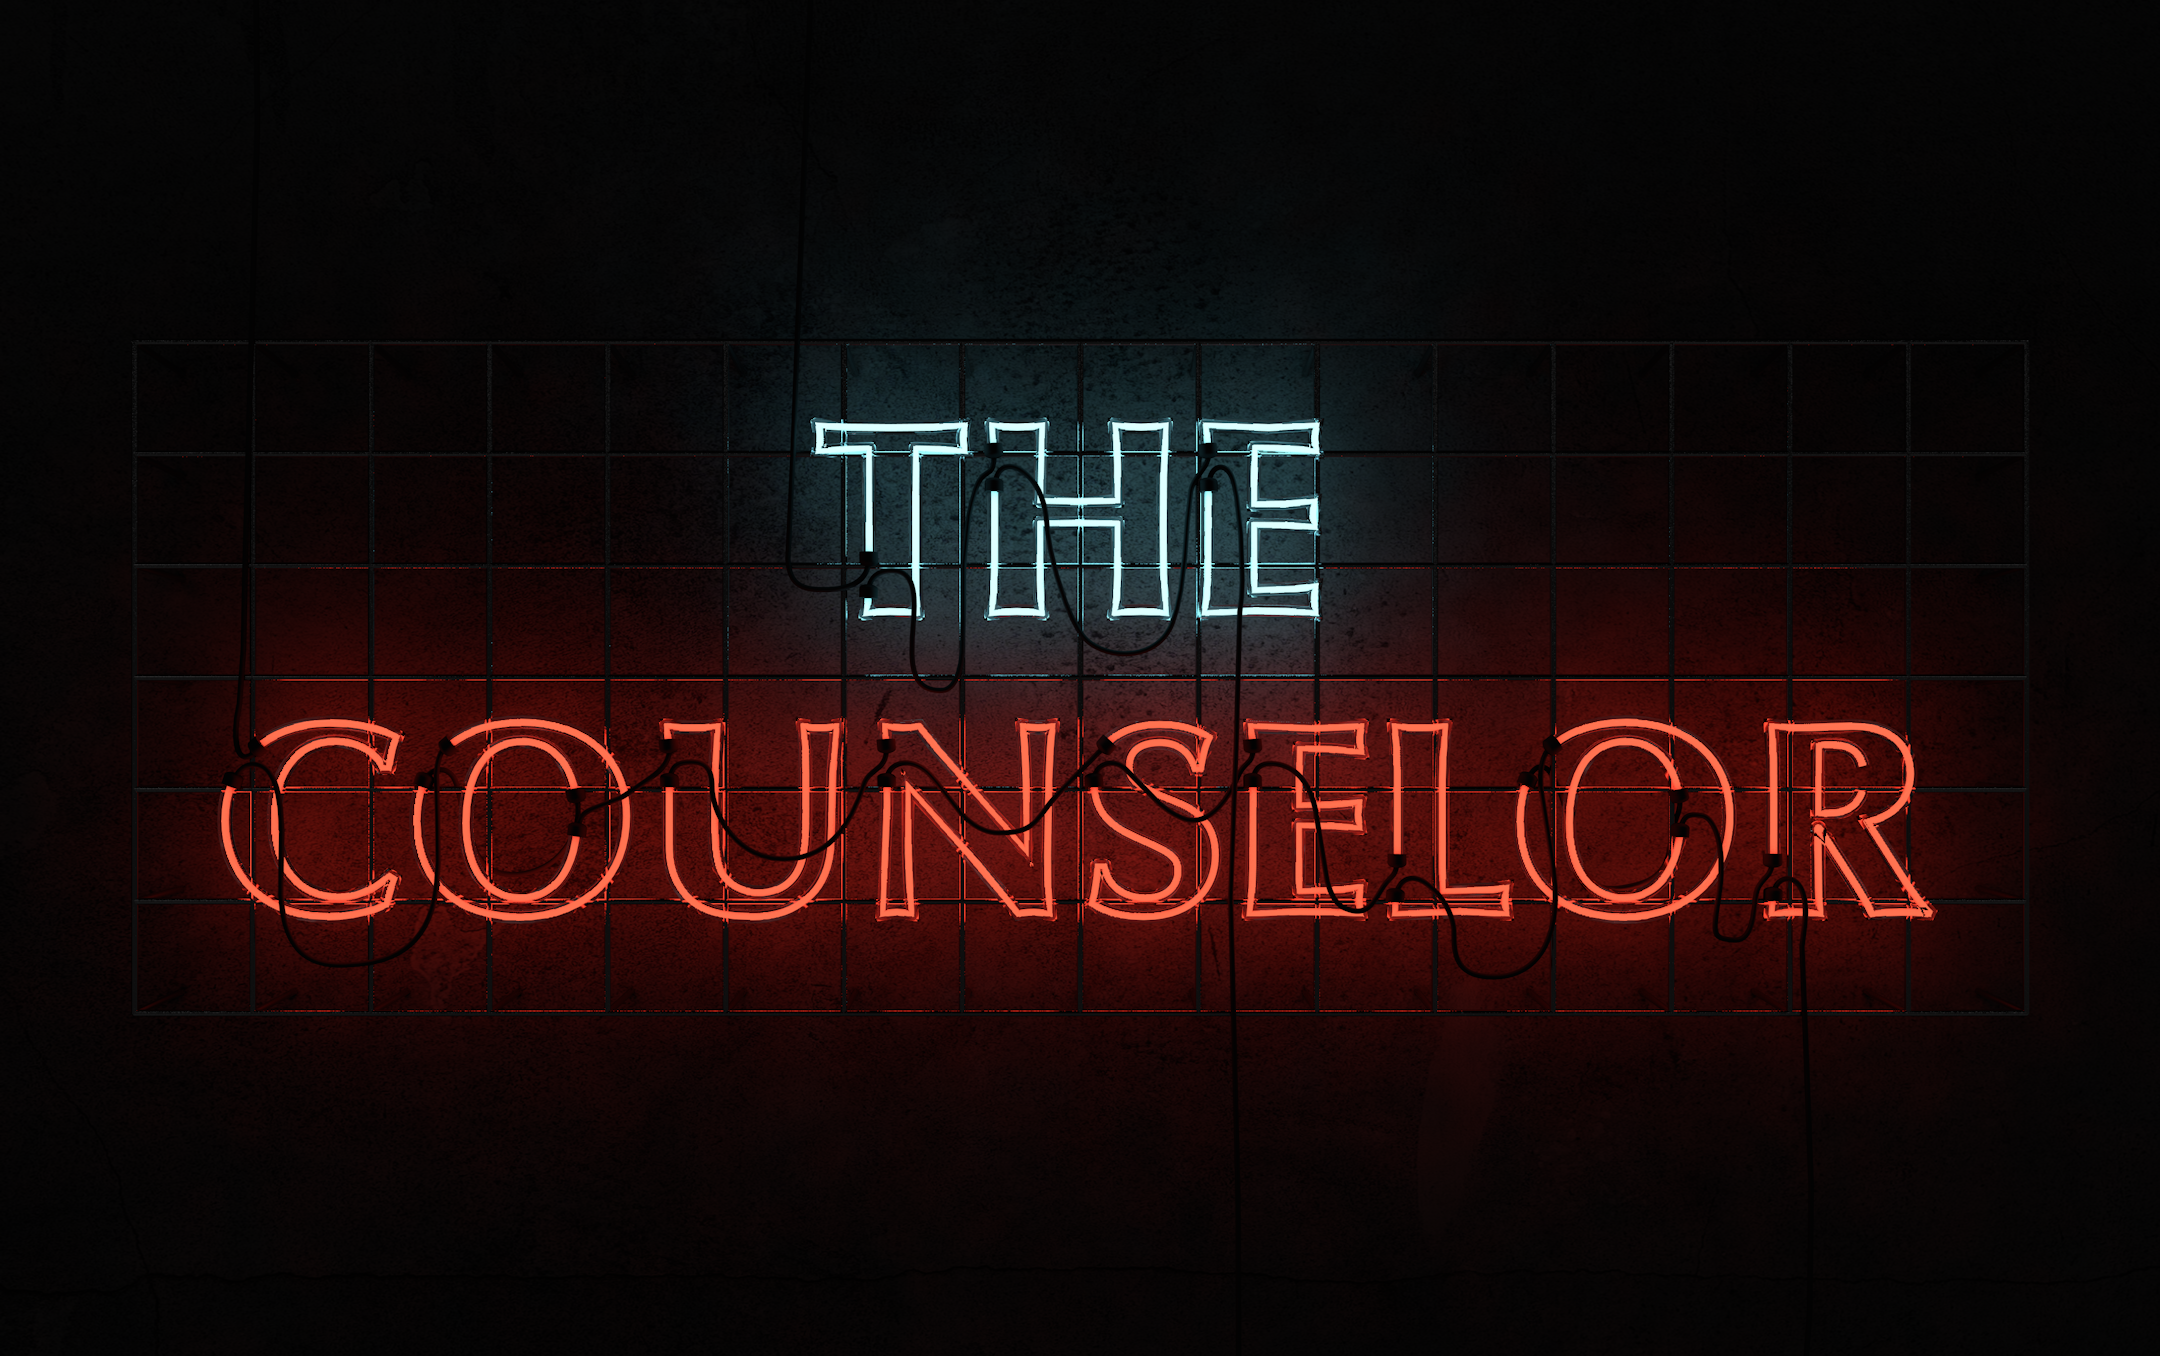 counselor_neon